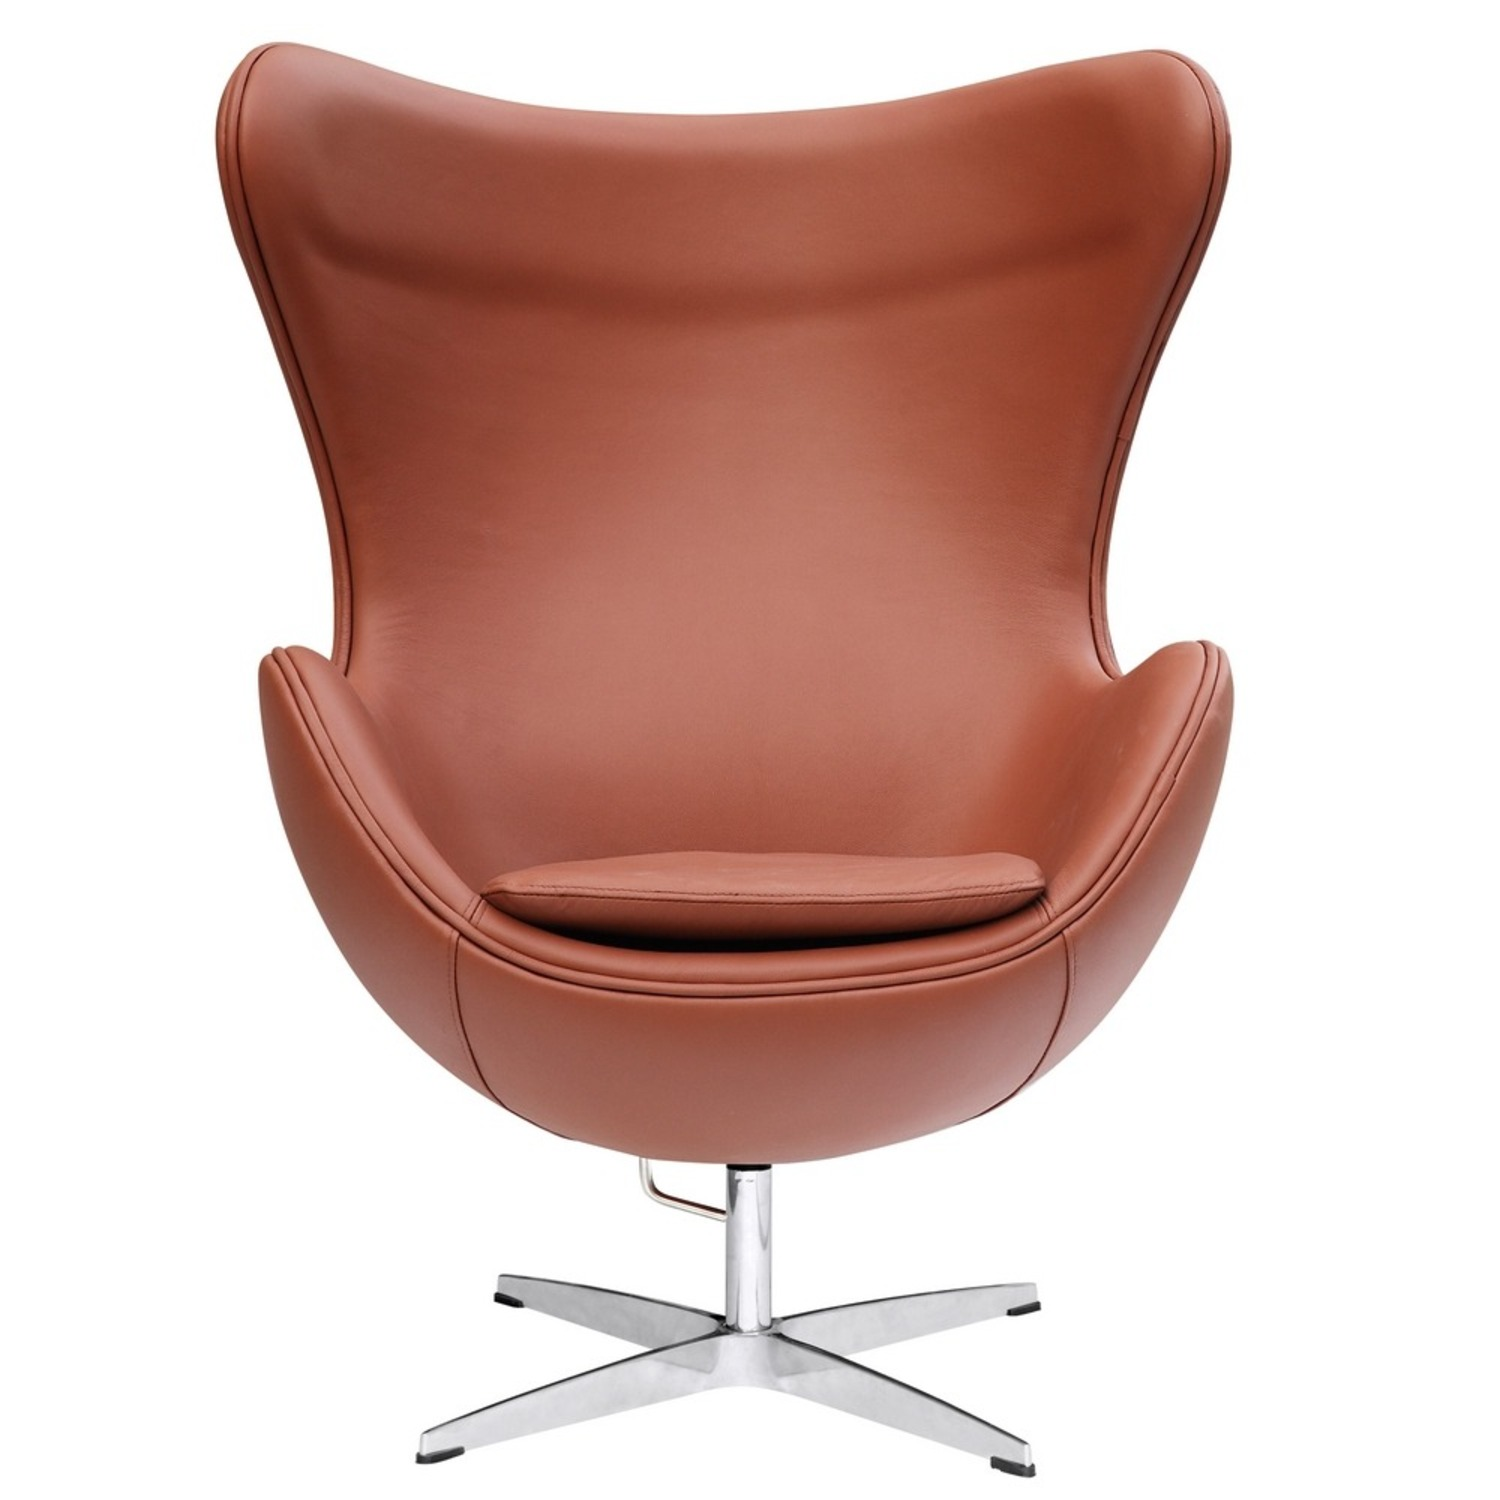 Inner Chair In Light Brown Leather - image-5